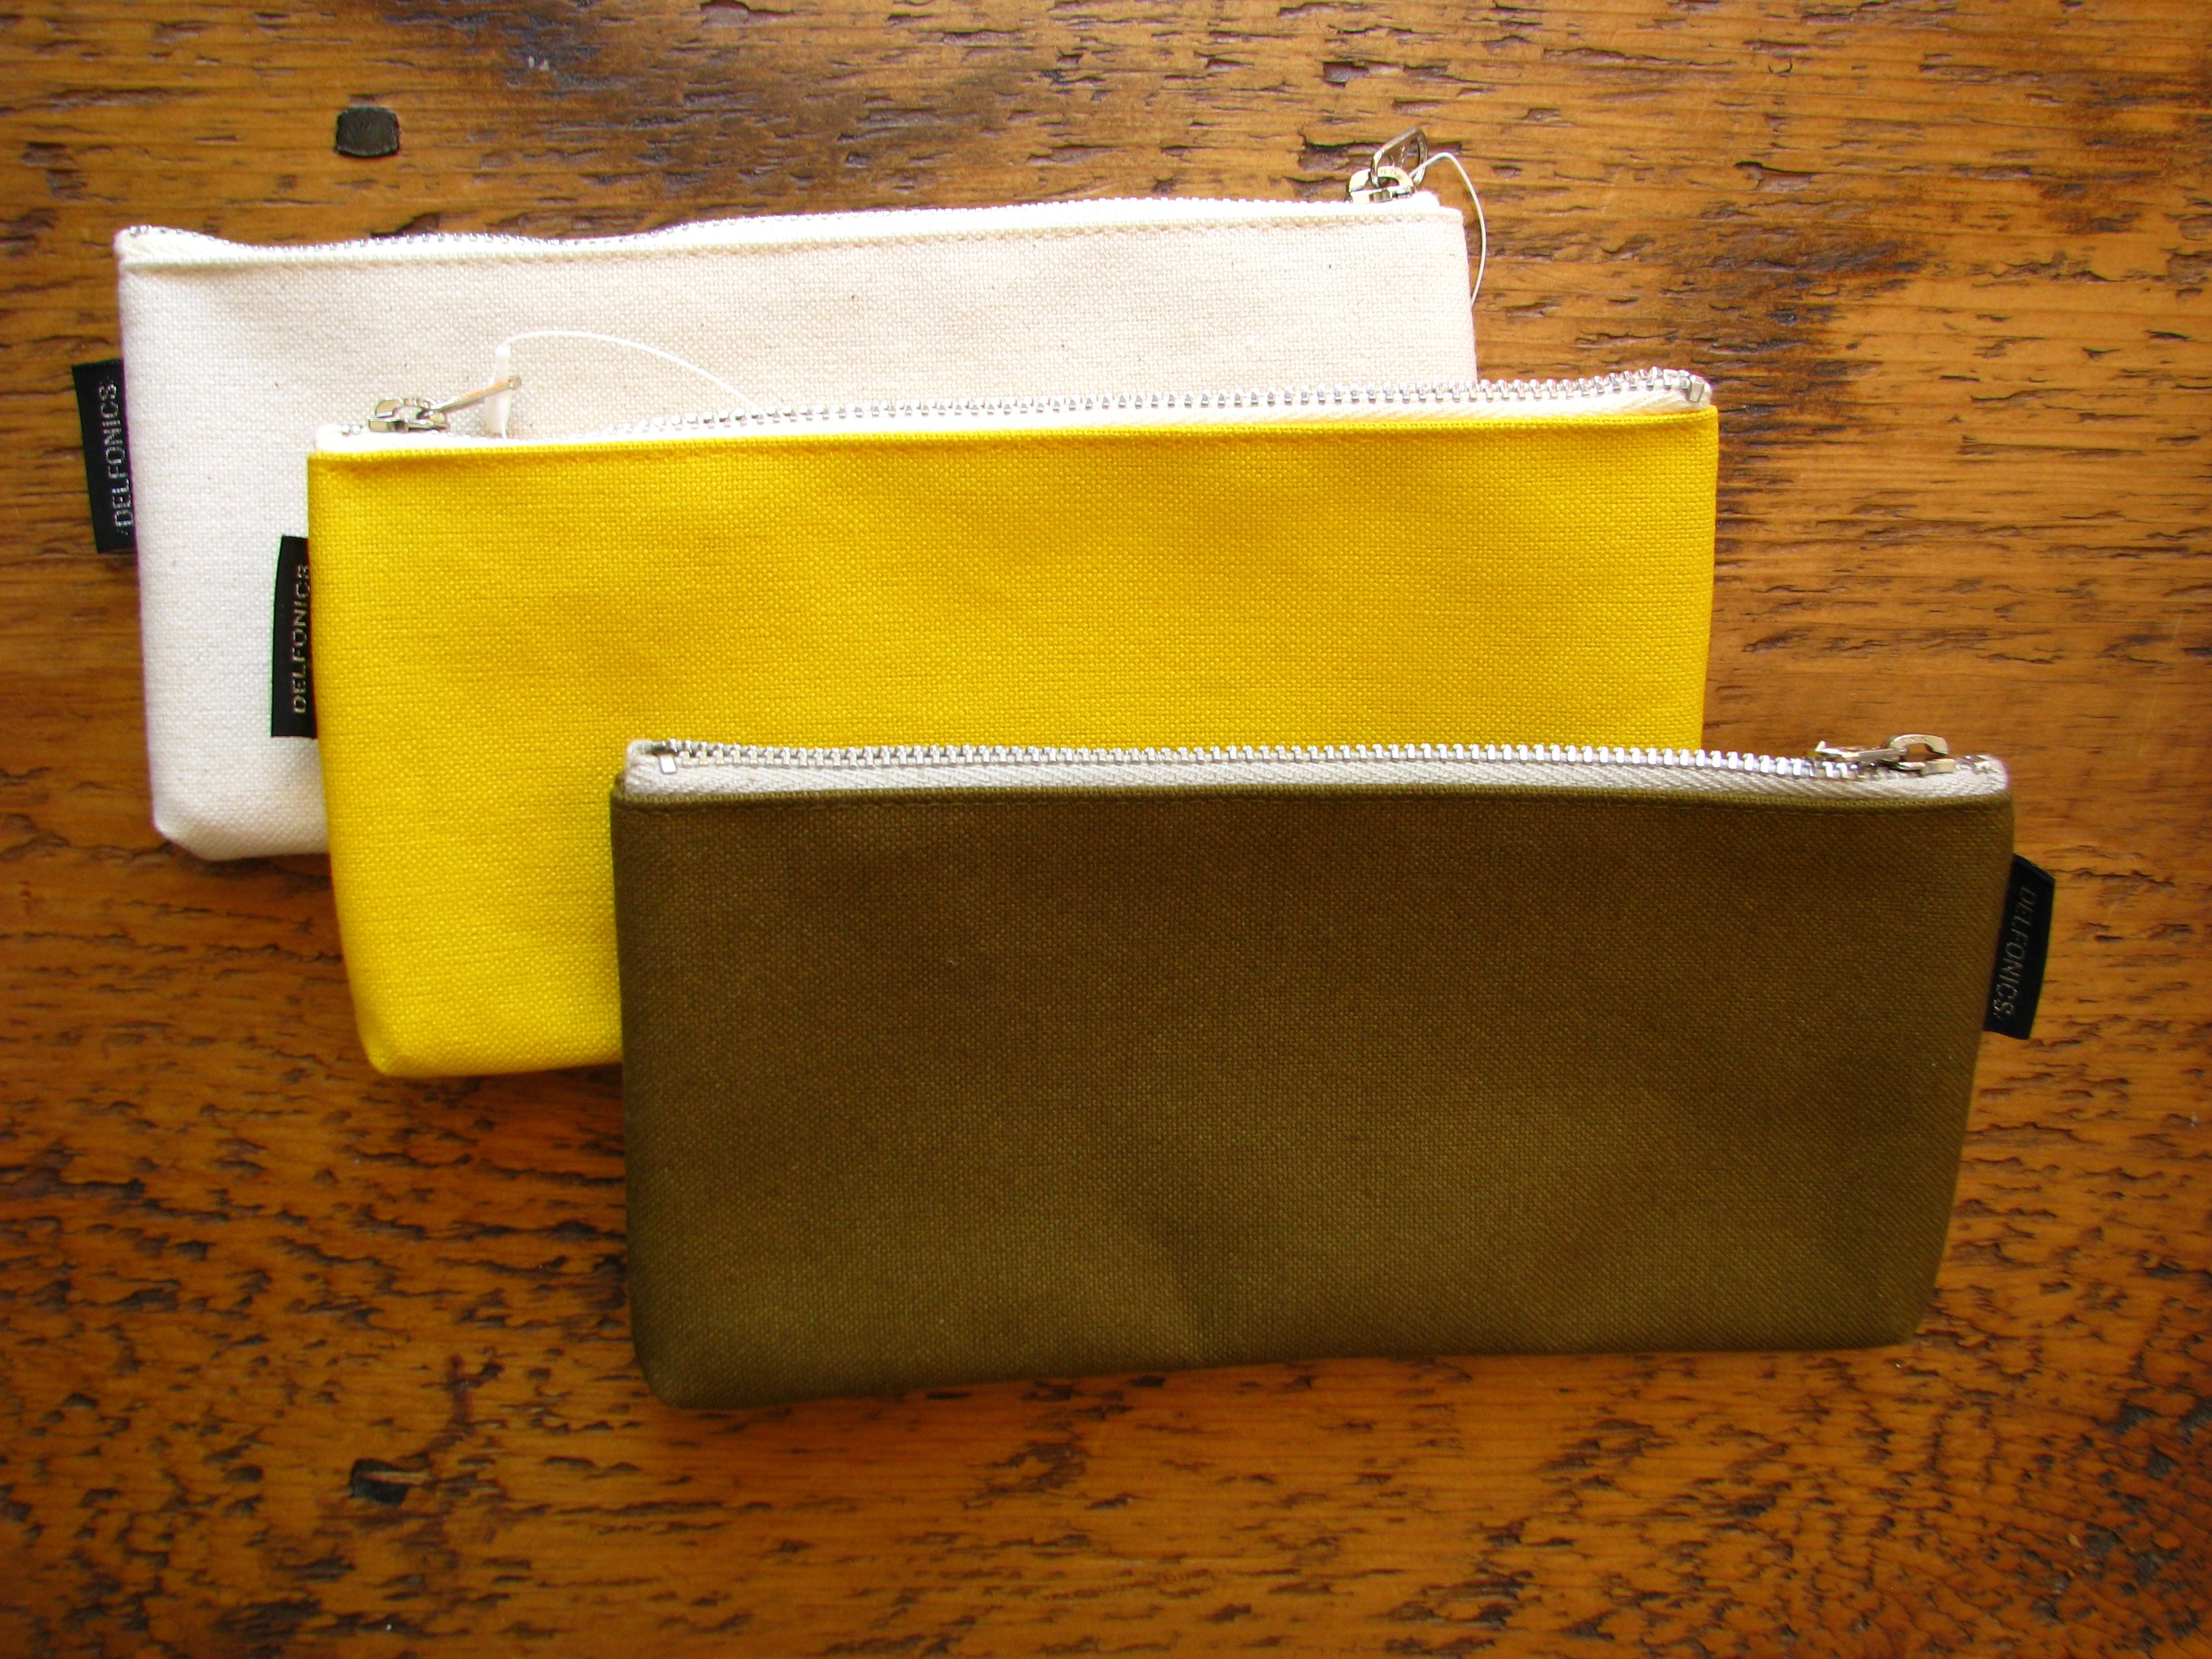 Delfonics Flat Pen Cases in Khaki, Yellow and Natural White